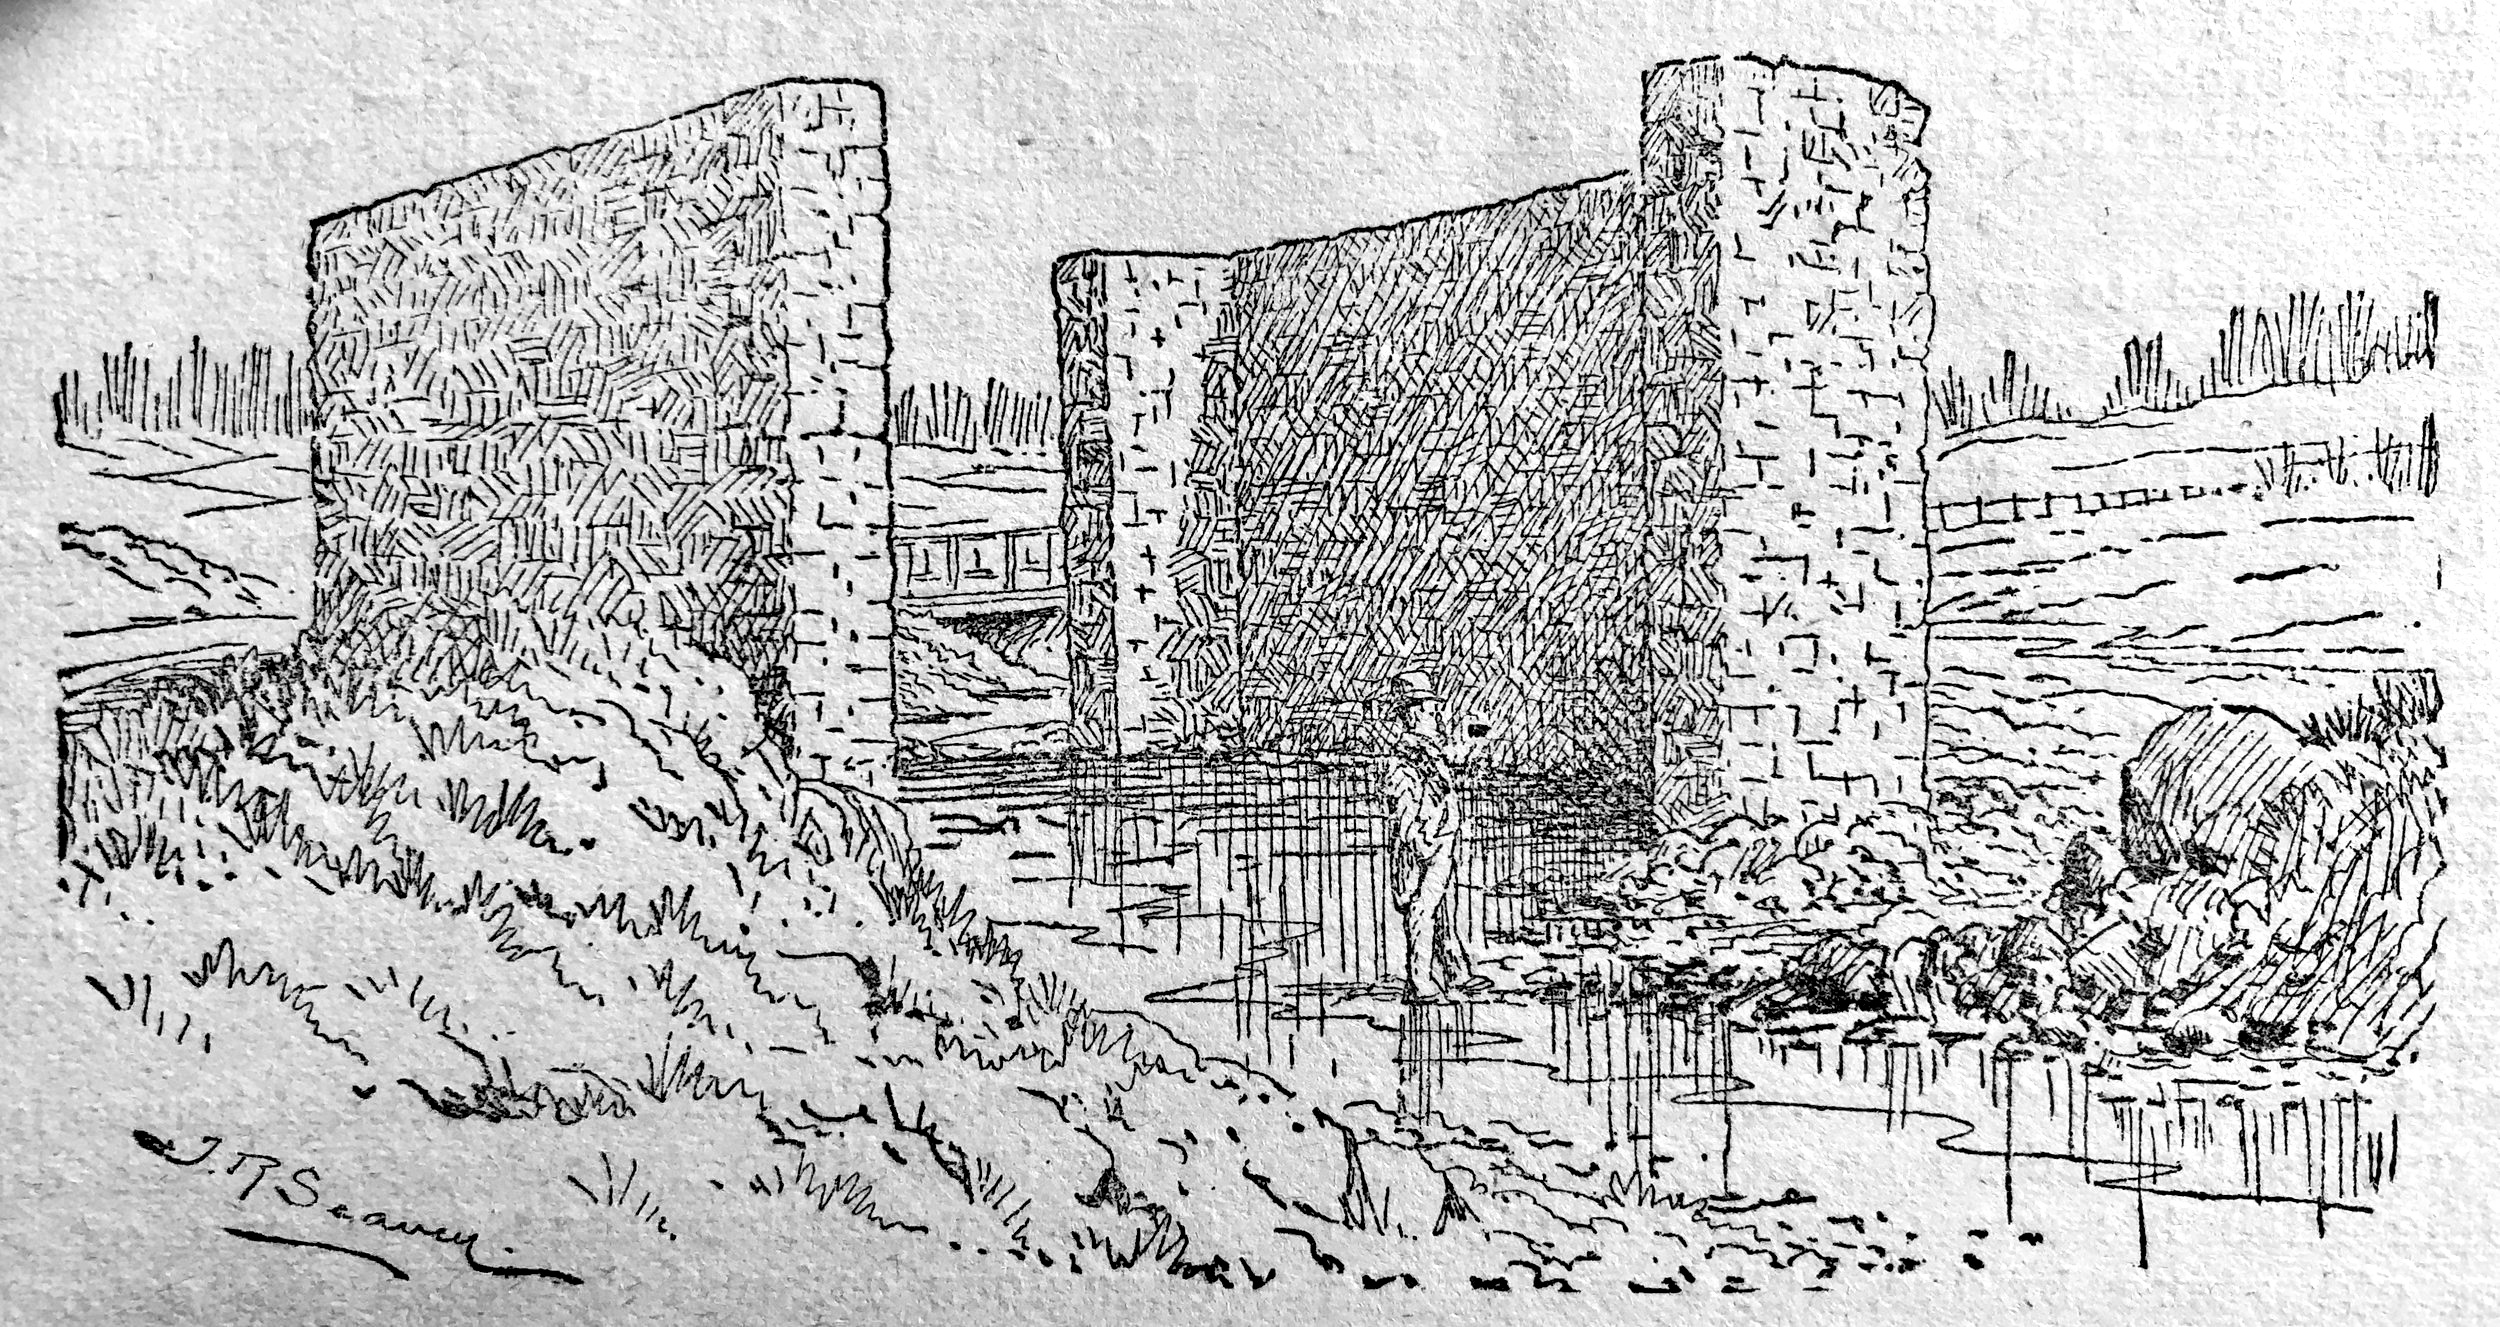 Ruins of the Romulus Grist Mill. Illustration by J. R. Seavey, published in Pen and Pencil Sketches of Wentworth Landmarks. Hamilton, Ont: Spectator Printing Company, 1897.